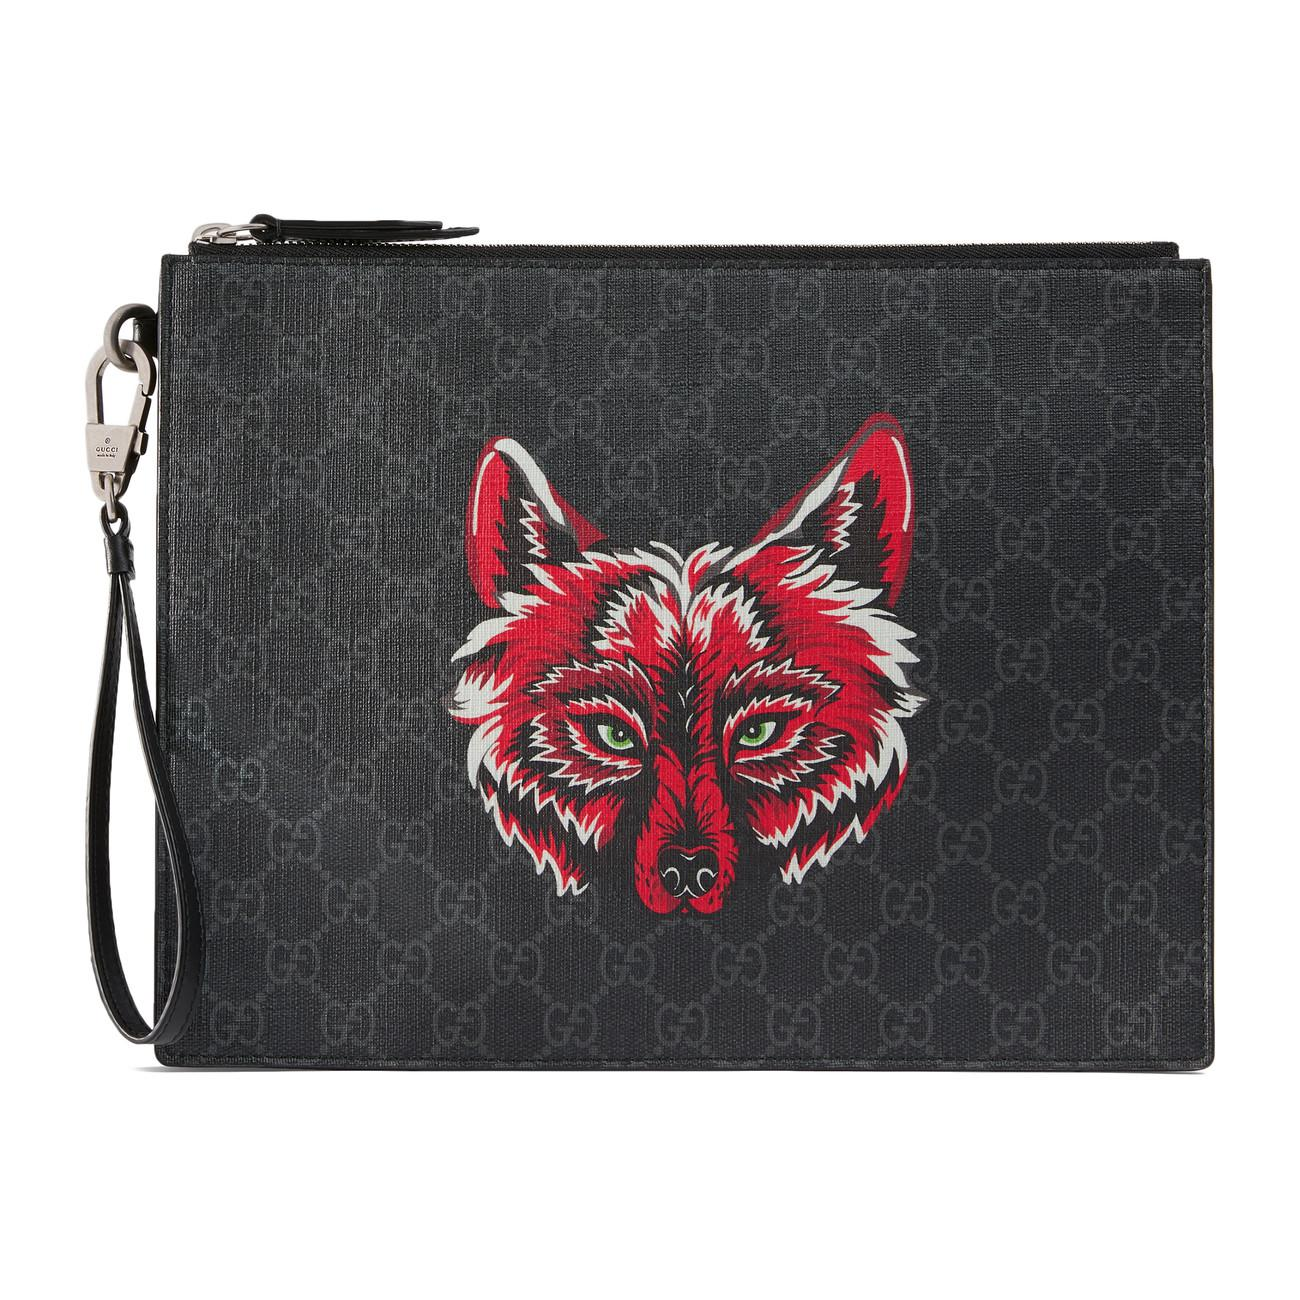 cc991f52284f9f Gucci GG Supreme Pouch With Wolf in Black for Men - Lyst